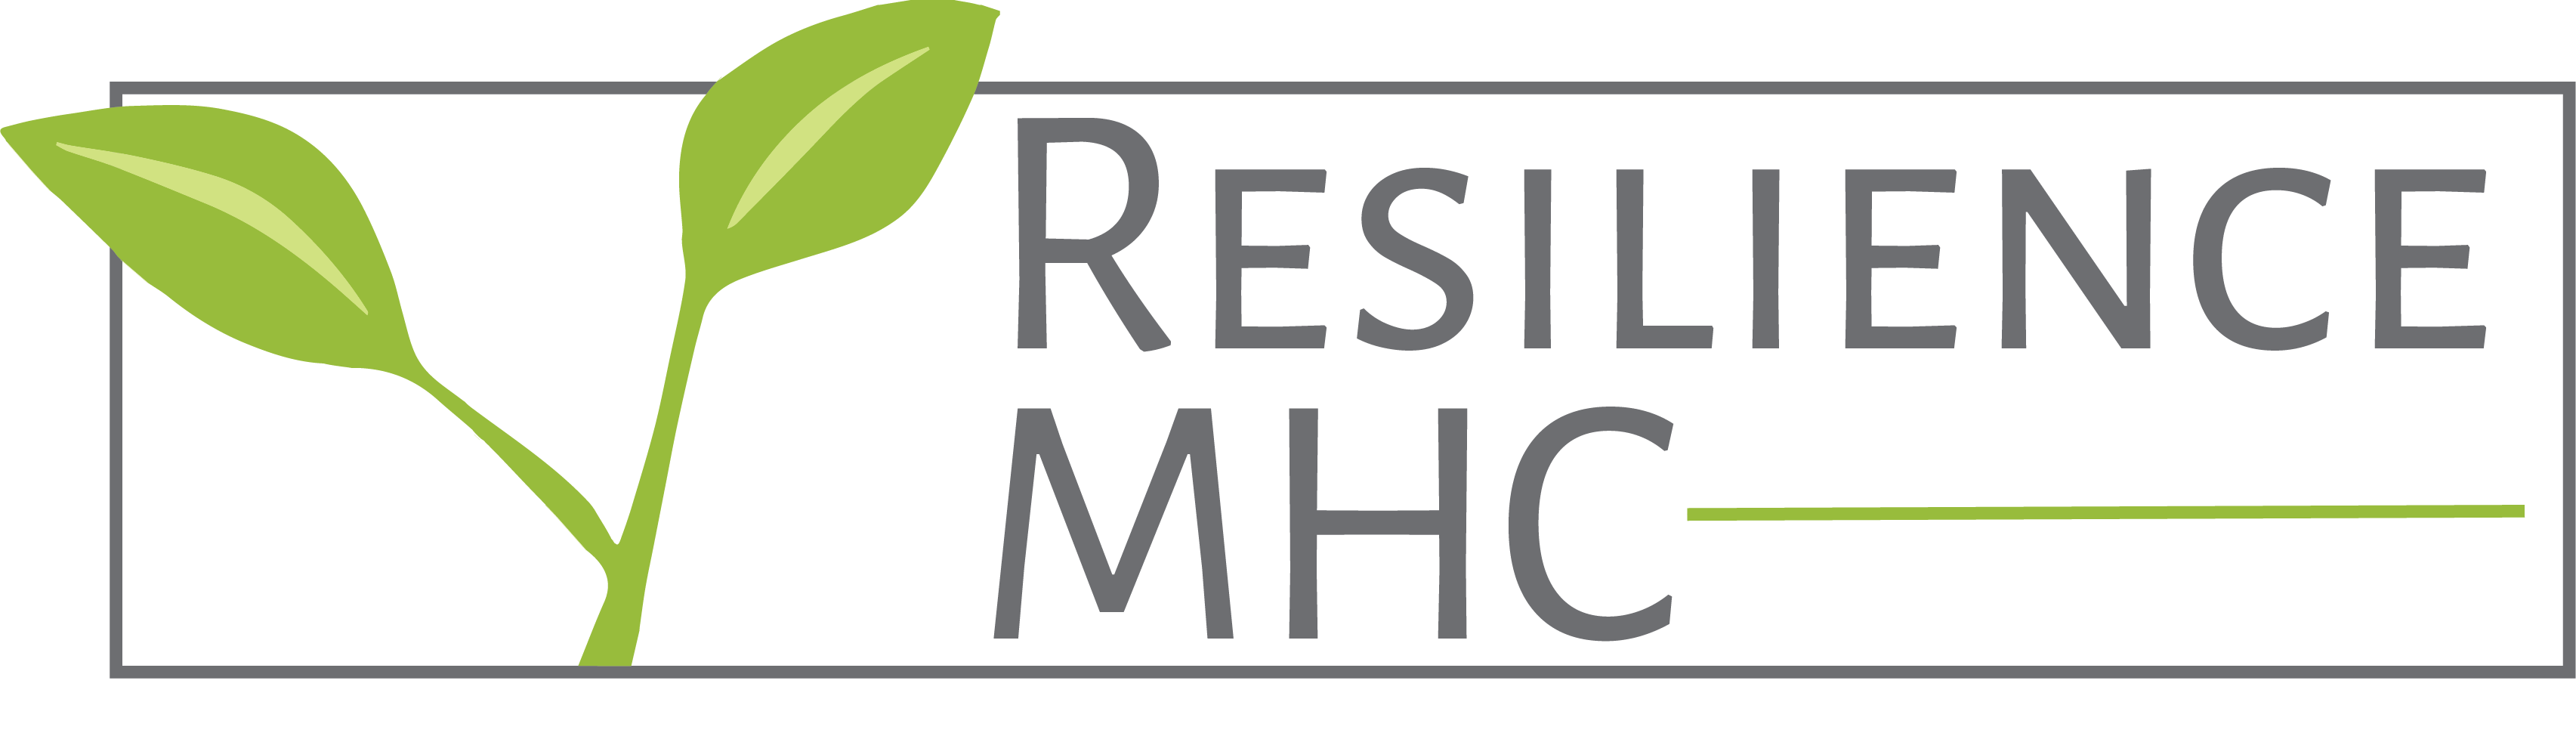 Resilience MHC